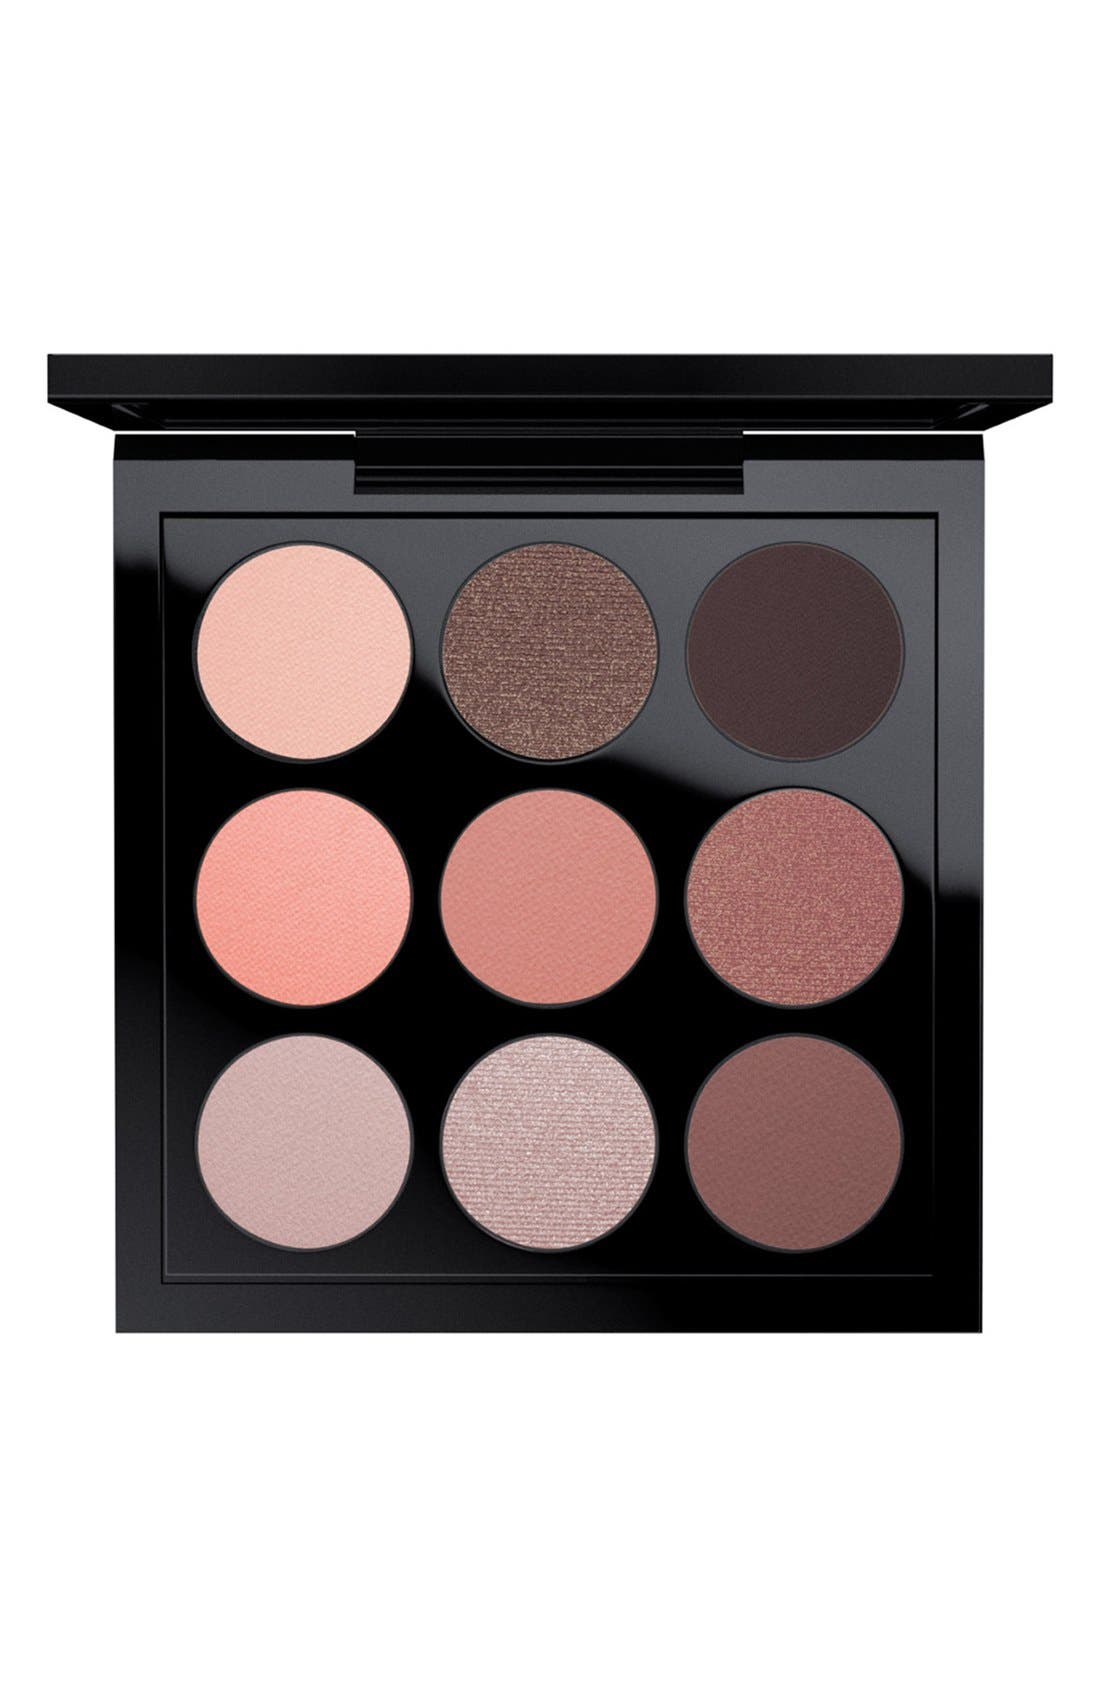 MAC Dusky Rose Times Nine Eyeshadow Palette ($53 Value)